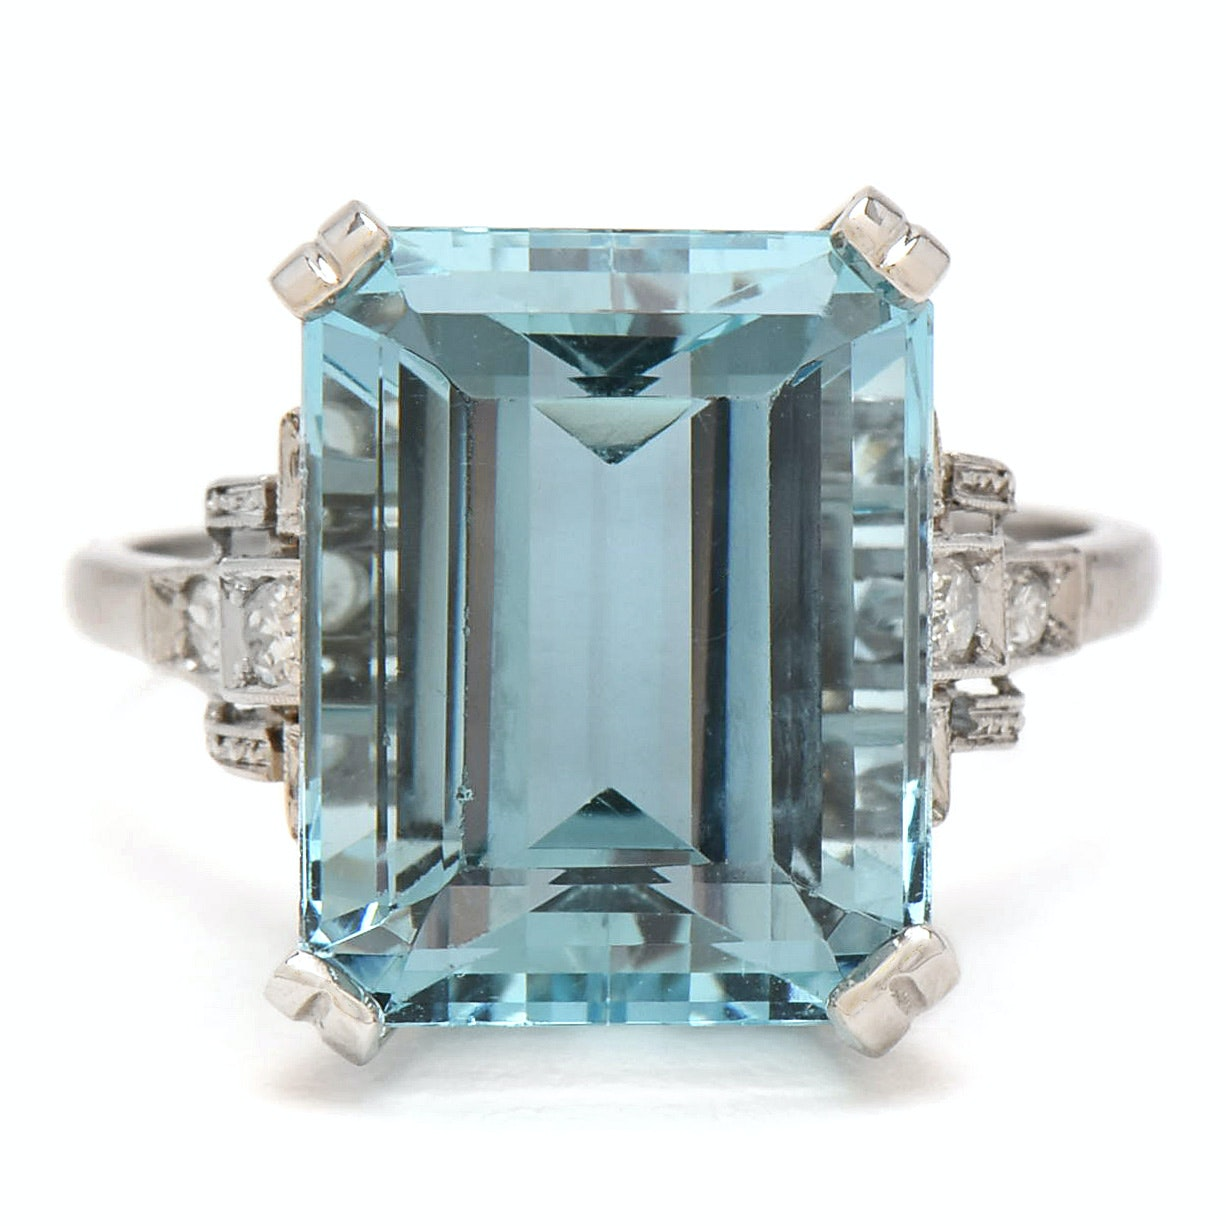 Platinum 10.34 CT Aquamarine and Diamond Ring with GIA Report